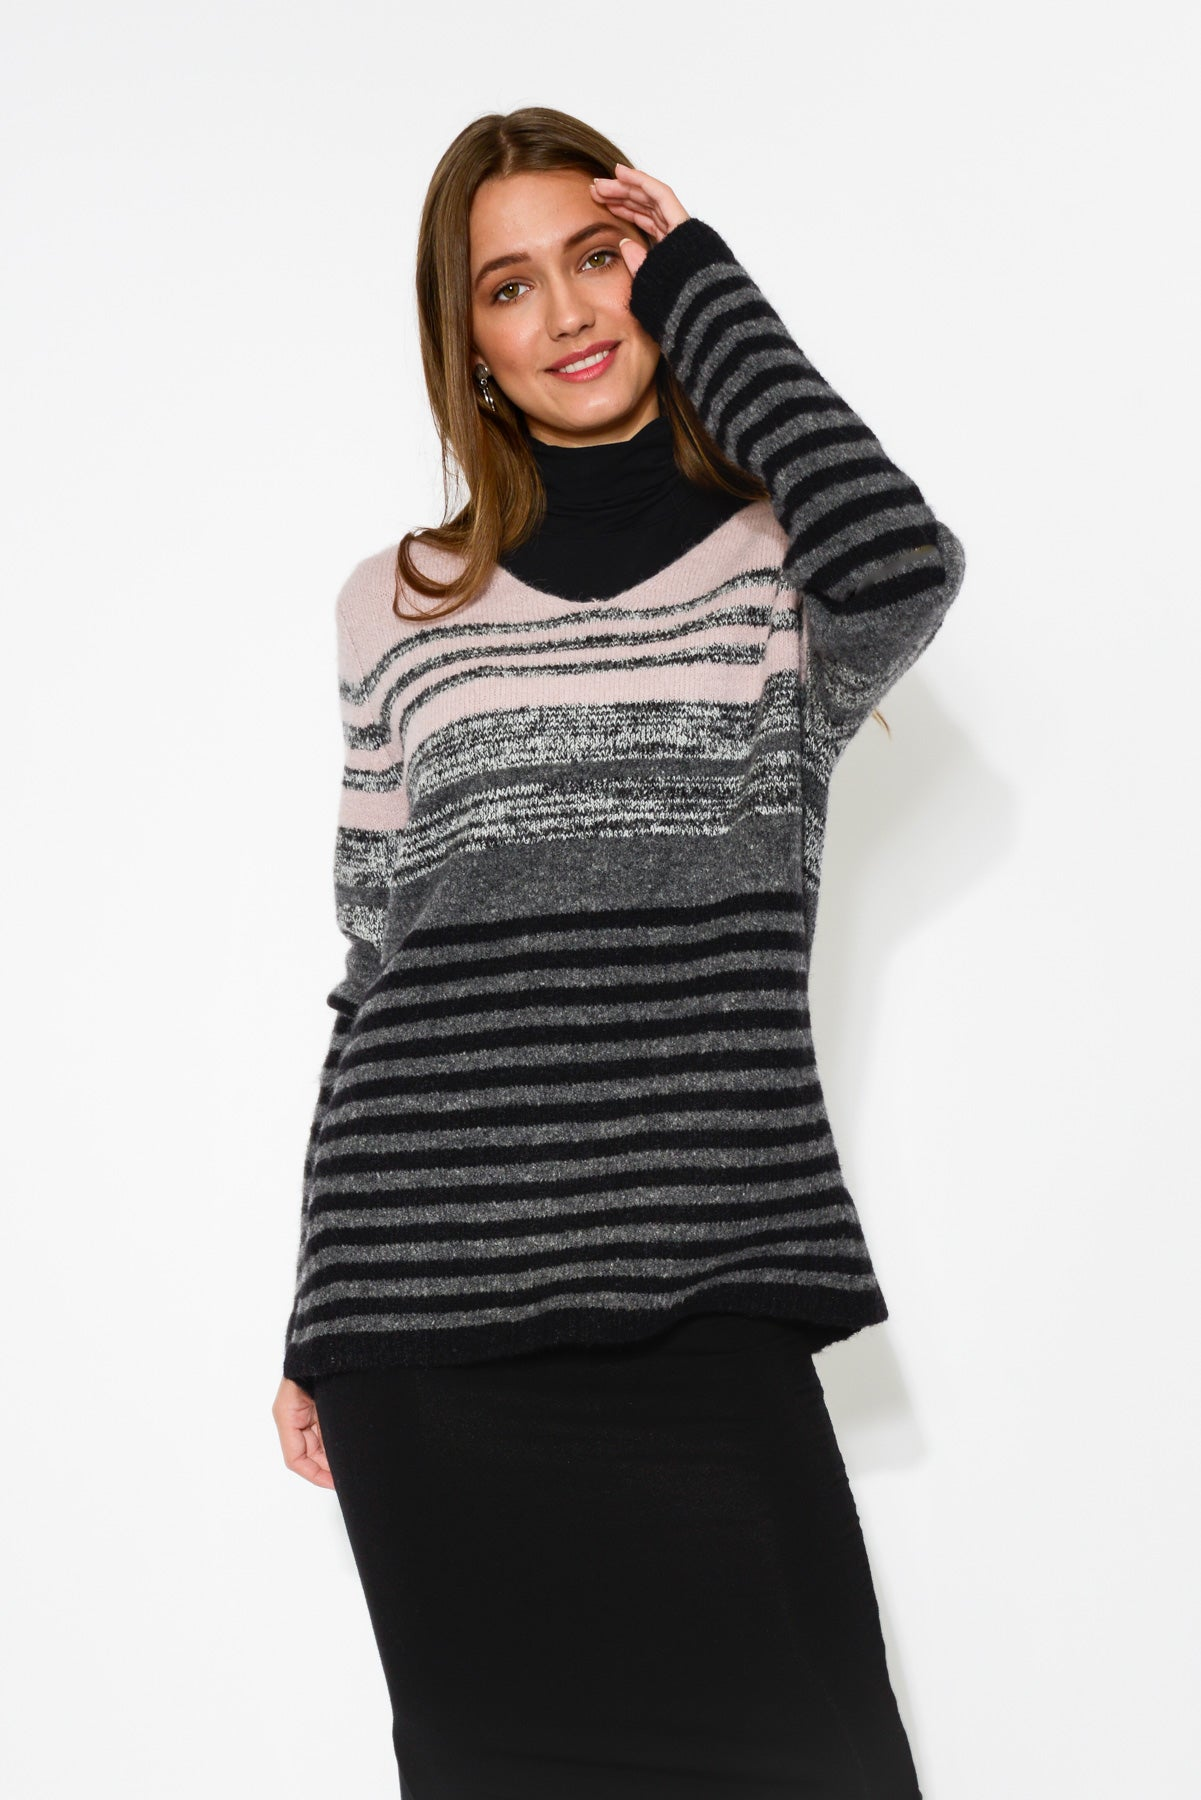 Multi Grey Stripe Knit Jumper - Blue Bungalow